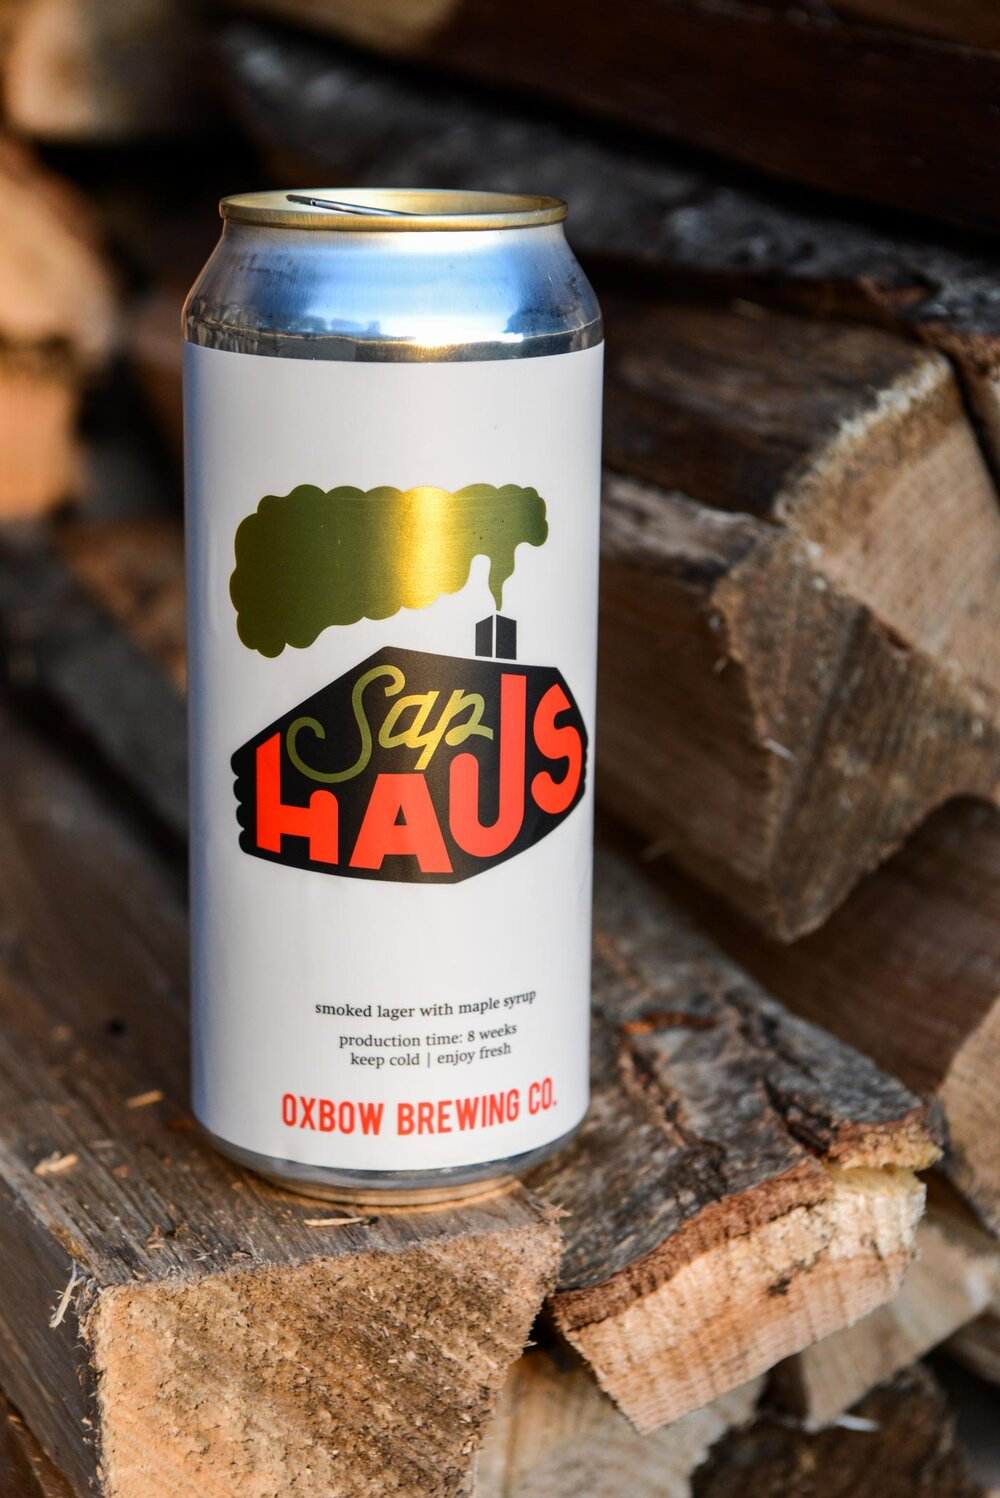 Oxbow's Sap Haus beer is a smoked lager brewed with Maine maple syrup. The distinctive label art is by Mali Welch of All Over It Maine.